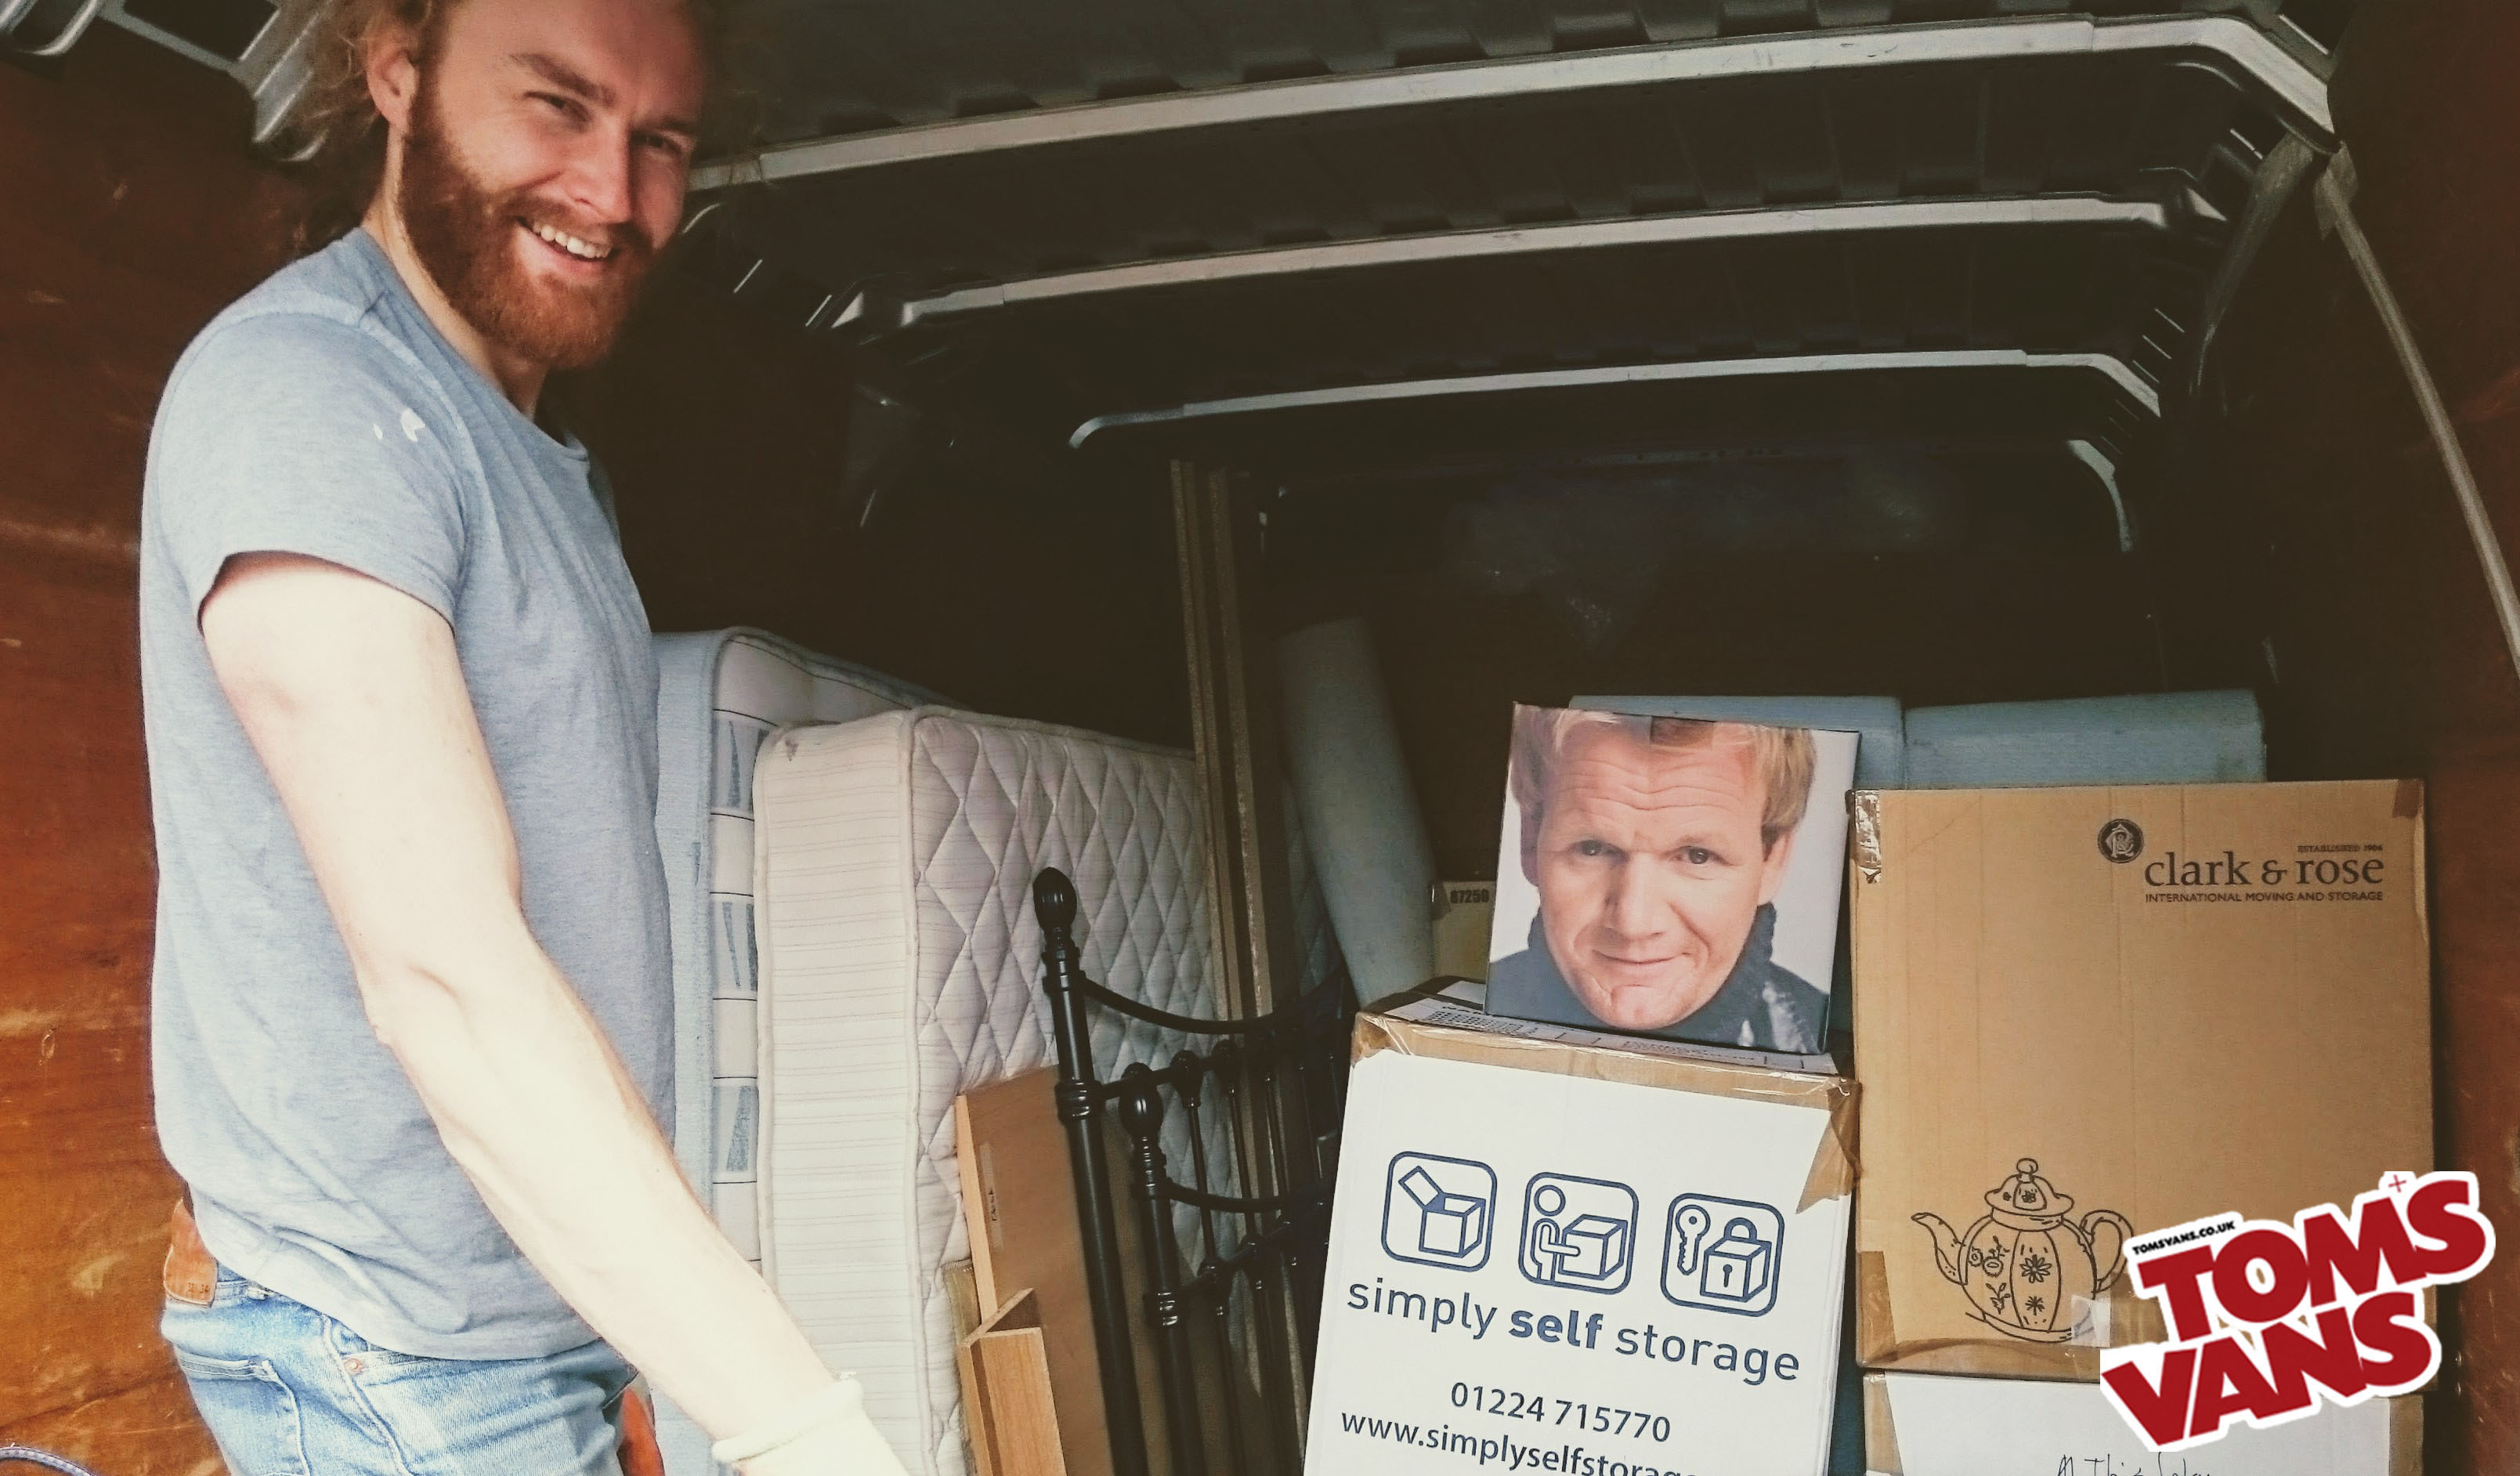 Local man and van delivery and home removals service in Bath, Bristol & Brighton